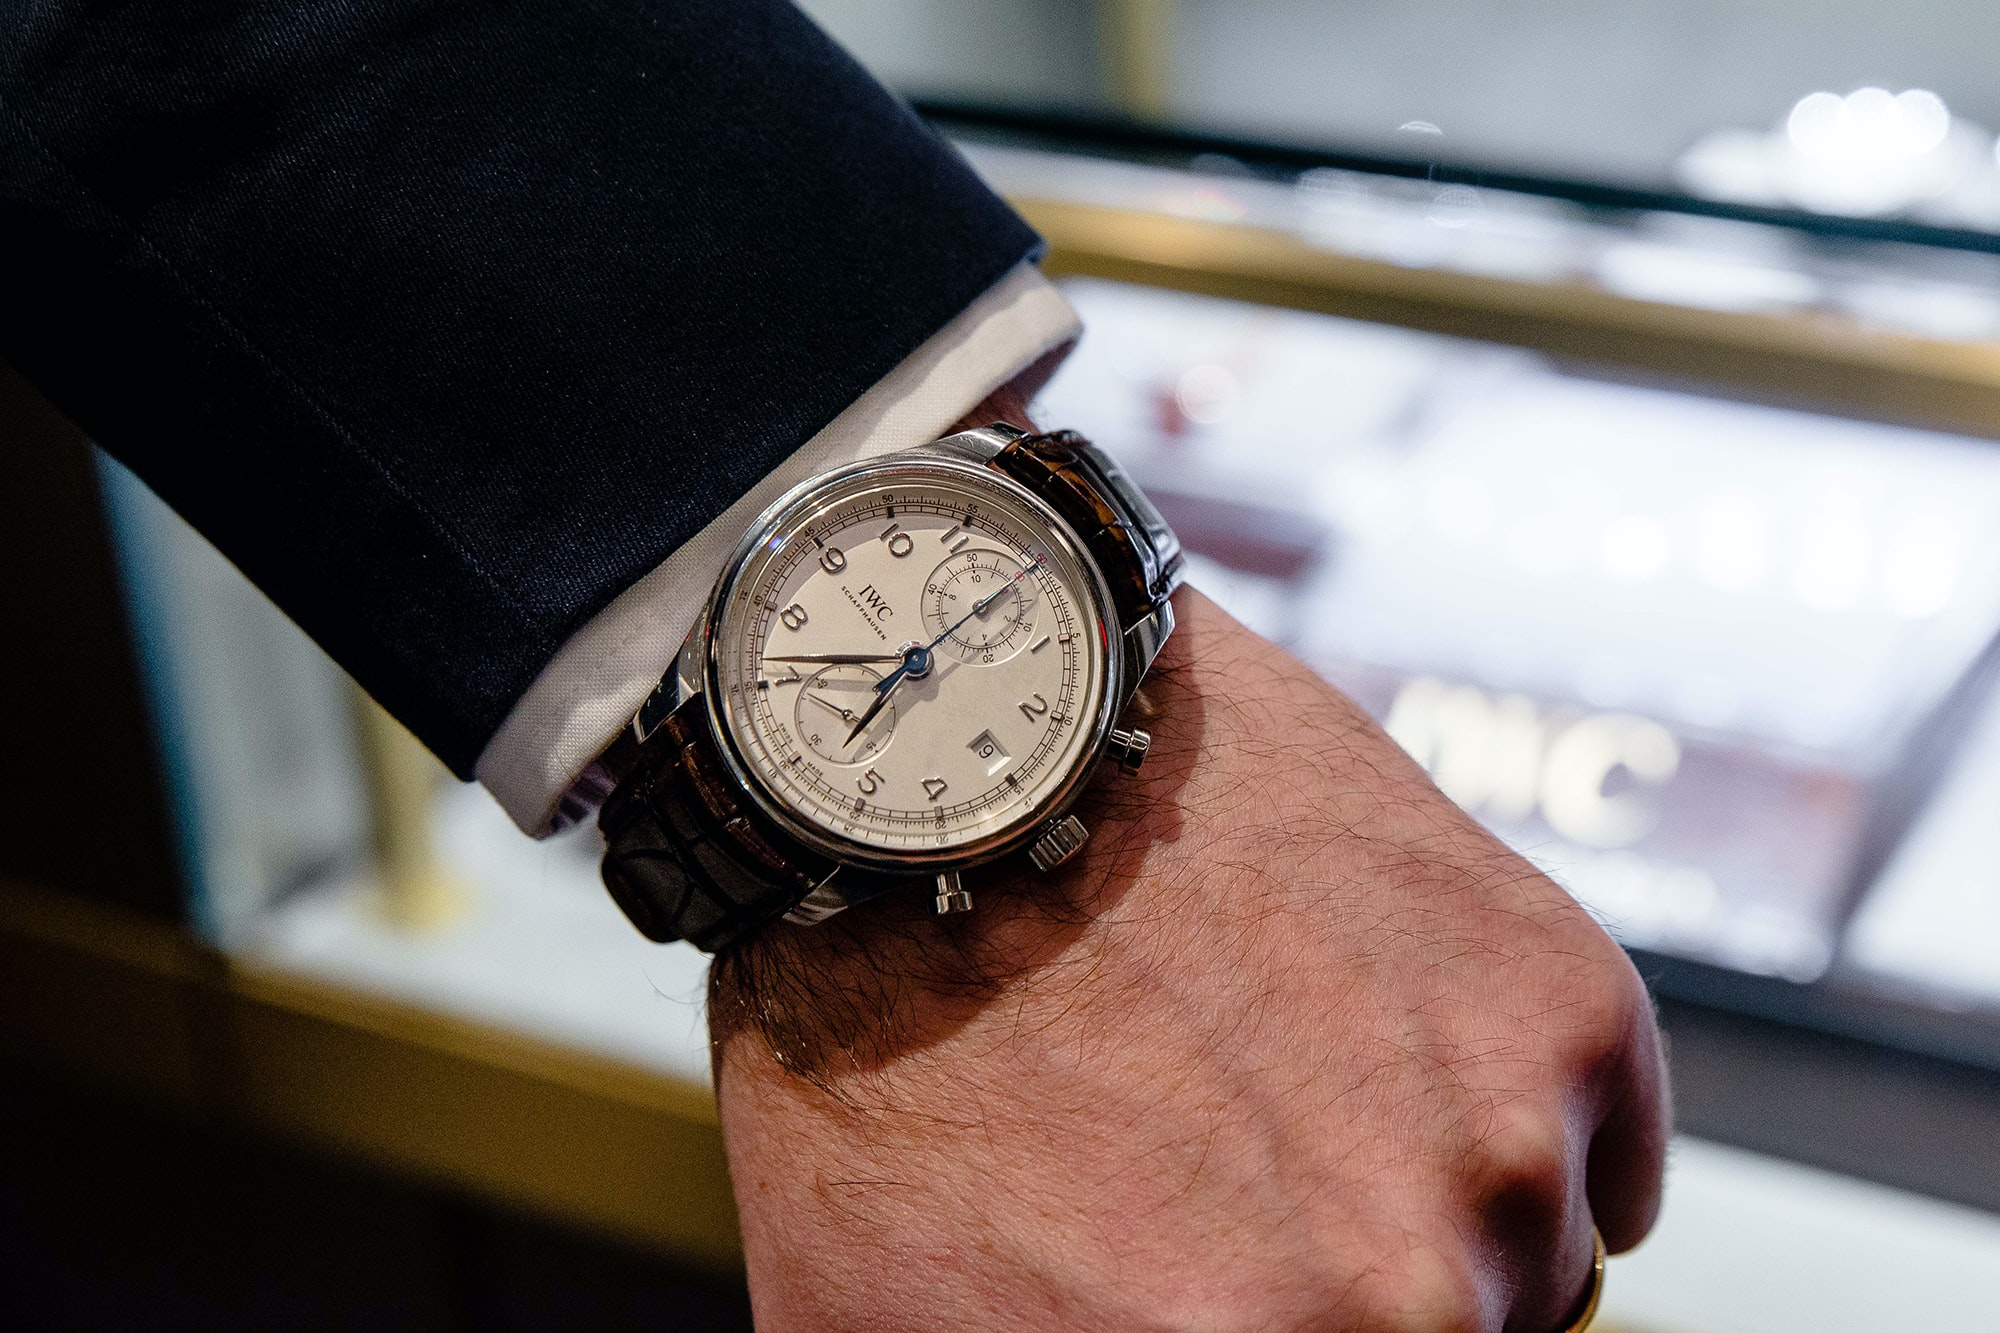 Photo Report: HODINKEE Celebrates London Jewelers' New Store In New York City's Oculus Photo Report: HODINKEE Celebrates London Jewelers' New Store In New York City's Oculus 20161109 LondonJewelersxHodinkee 018